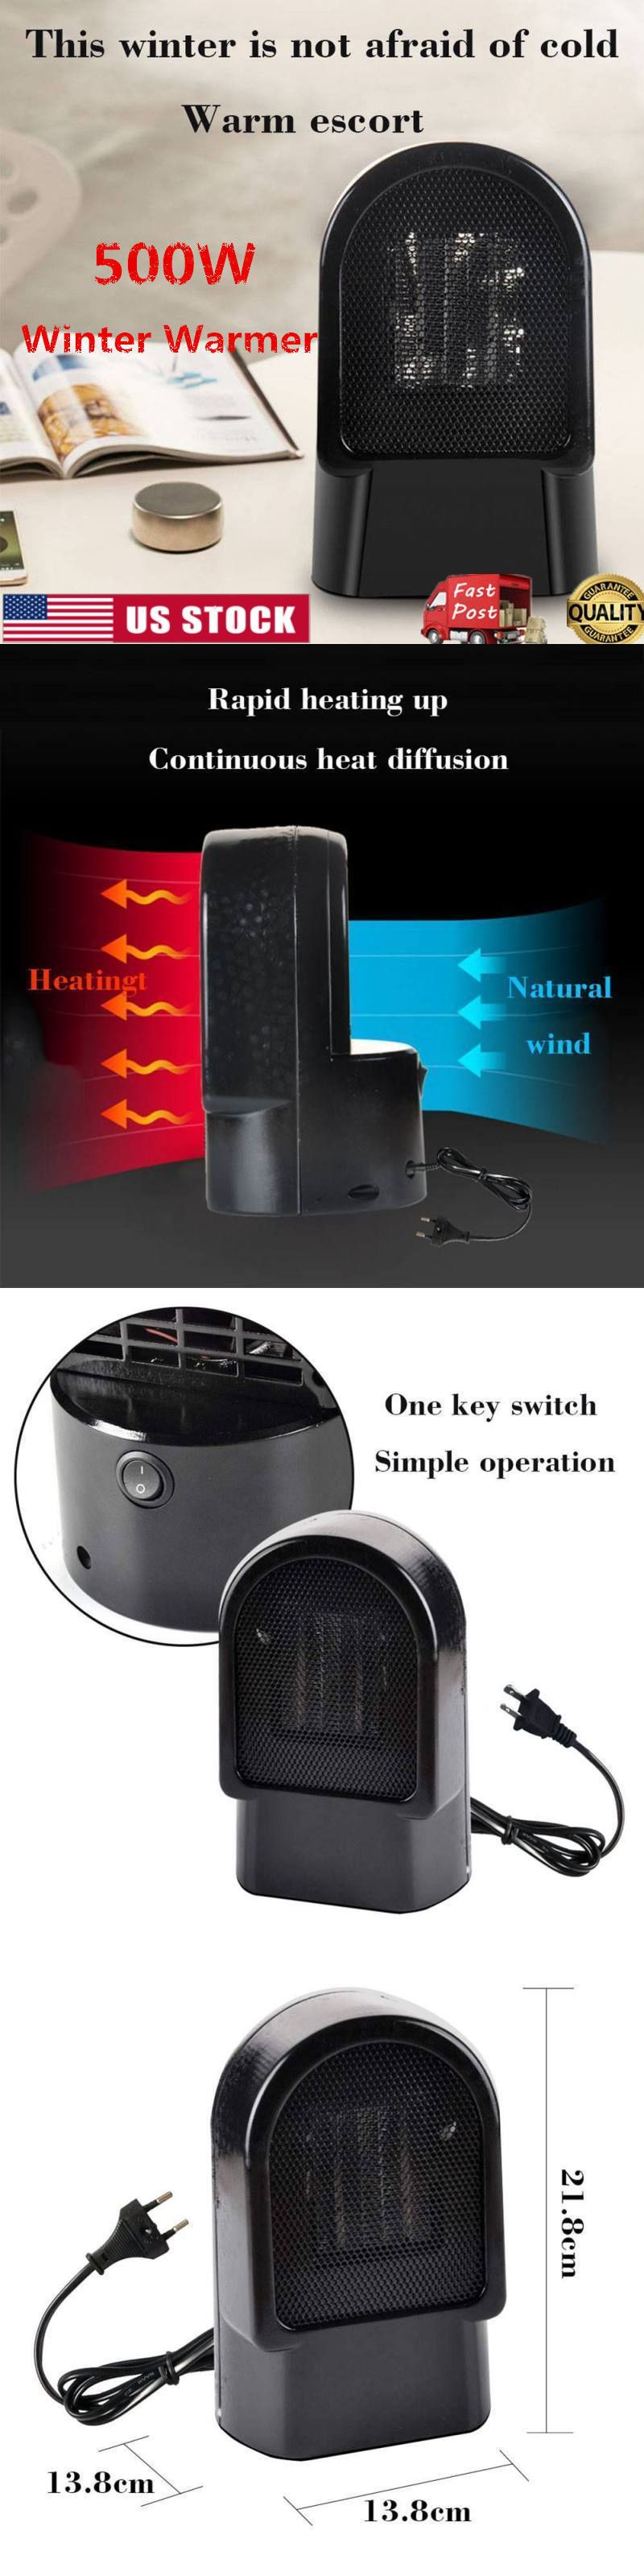 HOT Silent Electric Heater Warm Air Blower Upright Home